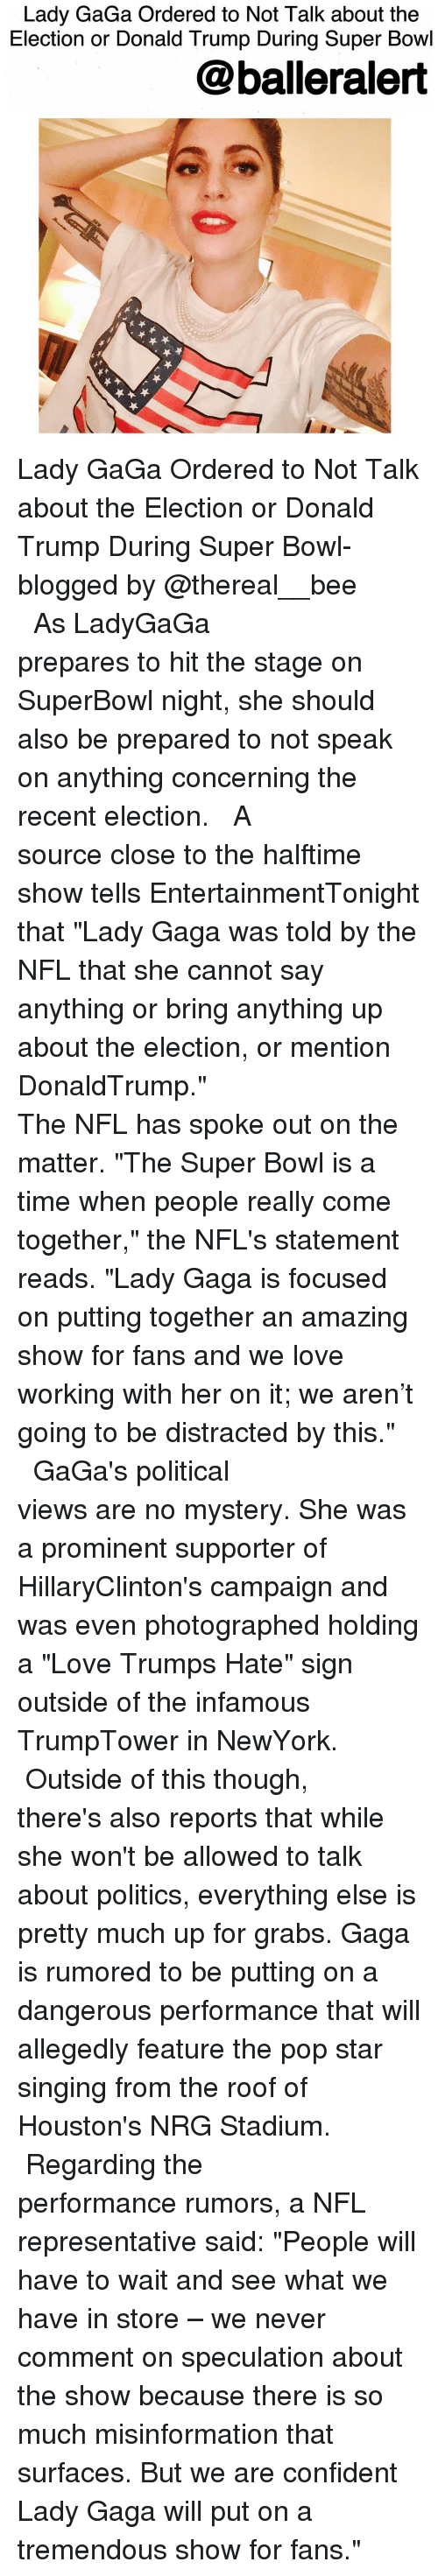 """Lady Gaga, Memes, and Super Bowl: Lady GaGa Ordered to Not Talk about the  Election or Donald Trump During Super Bowl  balleralert Lady GaGa Ordered to Not Talk about the Election or Donald Trump During Super Bowl-blogged by @thereal__bee ⠀⠀⠀⠀⠀⠀⠀⠀⠀ ⠀⠀⠀⠀⠀⠀⠀⠀⠀ As LadyGaGa prepares to hit the stage on SuperBowl night, she should also be prepared to not speak on anything concerning the recent election. ⠀⠀⠀⠀⠀⠀⠀⠀⠀ ⠀⠀⠀⠀⠀⠀⠀⠀⠀ A source close to the halftime show tells EntertainmentTonight that """"Lady Gaga was told by the NFL that she cannot say anything or bring anything up about the election, or mention DonaldTrump."""" ⠀⠀⠀⠀⠀⠀⠀⠀⠀ ⠀⠀⠀⠀⠀⠀⠀⠀⠀ The NFL has spoke out on the matter. """"The Super Bowl is a time when people really come together,"""" the NFL's statement reads. """"Lady Gaga is focused on putting together an amazing show for fans and we love working with her on it; we aren't going to be distracted by this."""" ⠀⠀⠀⠀⠀⠀⠀⠀⠀ ⠀⠀⠀⠀⠀⠀⠀⠀⠀ GaGa's political views are no mystery. She was a prominent supporter of HillaryClinton's campaign and was even photographed holding a """"Love Trumps Hate"""" sign outside of the infamous TrumpTower in NewYork. ⠀⠀⠀⠀⠀⠀⠀⠀⠀ ⠀⠀⠀⠀⠀⠀⠀⠀⠀ Outside of this though, there's also reports that while she won't be allowed to talk about politics, everything else is pretty much up for grabs. Gaga is rumored to be putting on a dangerous performance that will allegedly feature the pop star singing from the roof of Houston's NRG Stadium. ⠀⠀⠀⠀⠀⠀⠀⠀⠀ ⠀⠀⠀⠀⠀⠀⠀⠀⠀ Regarding the performance rumors, a NFL representative said: """"People will have to wait and see what we have in store – we never comment on speculation about the show because there is so much misinformation that surfaces. But we are confident Lady Gaga will put on a tremendous show for fans."""""""